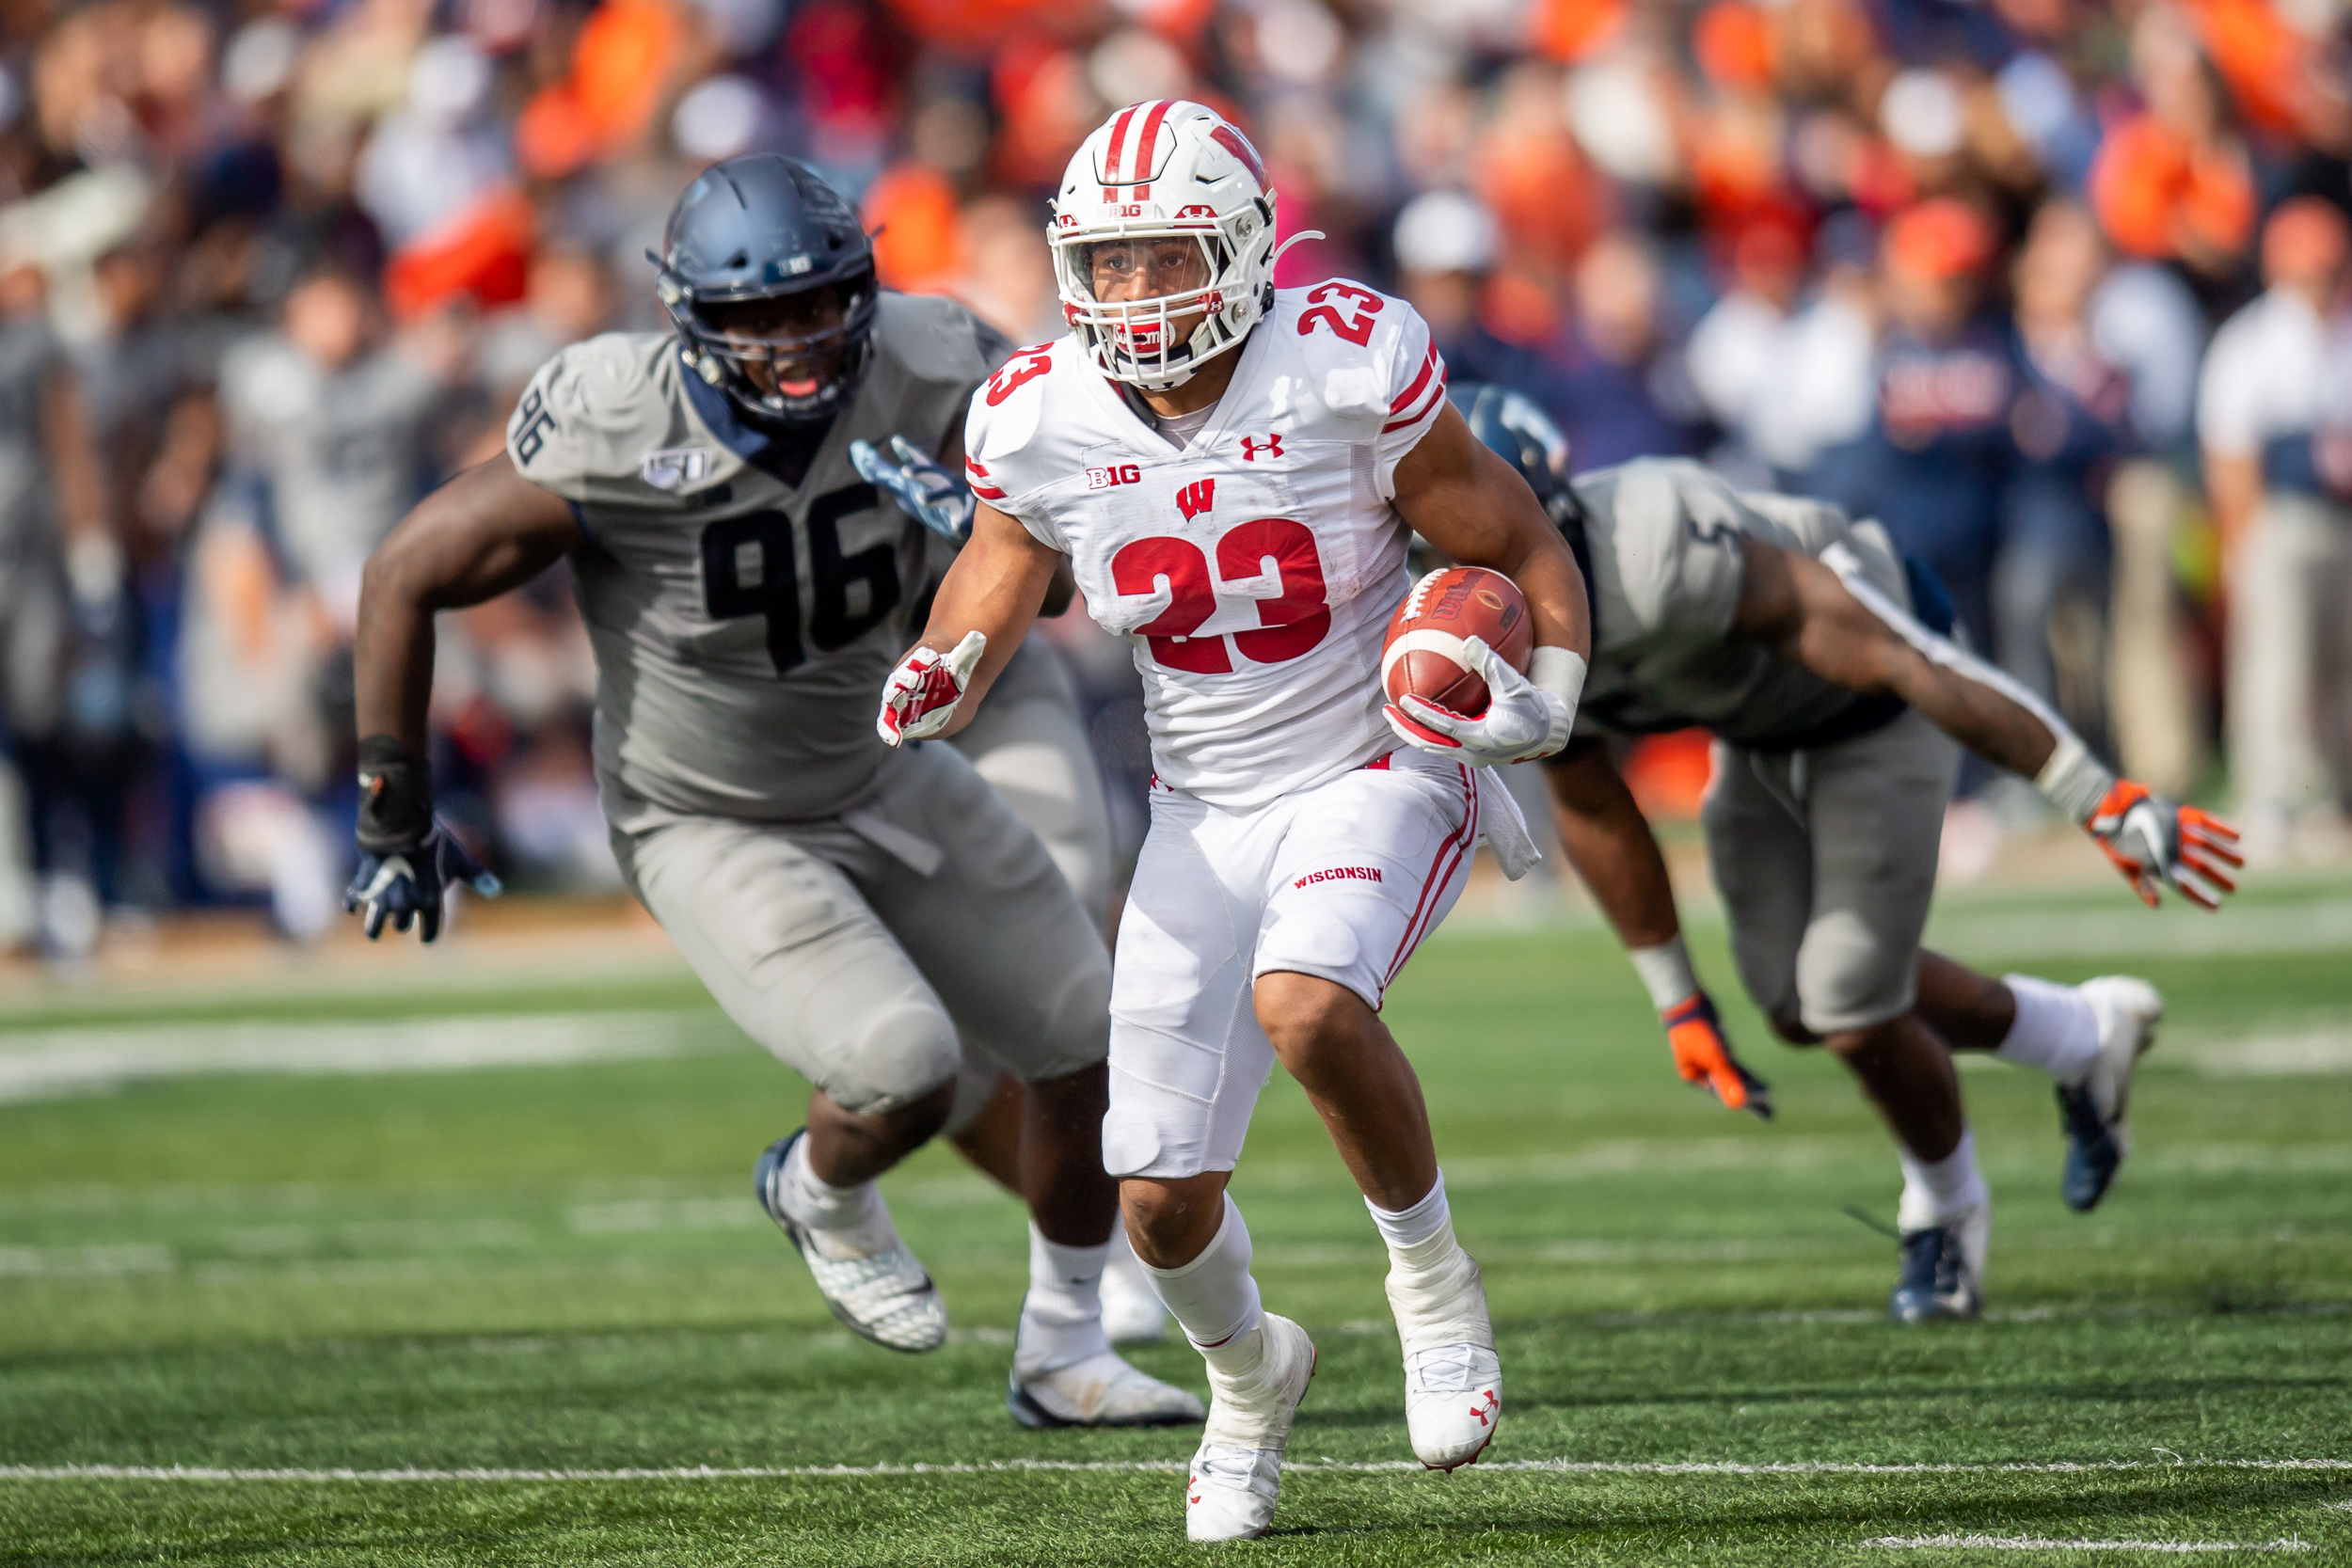 NCAA Football: Wisconsin at Illinois